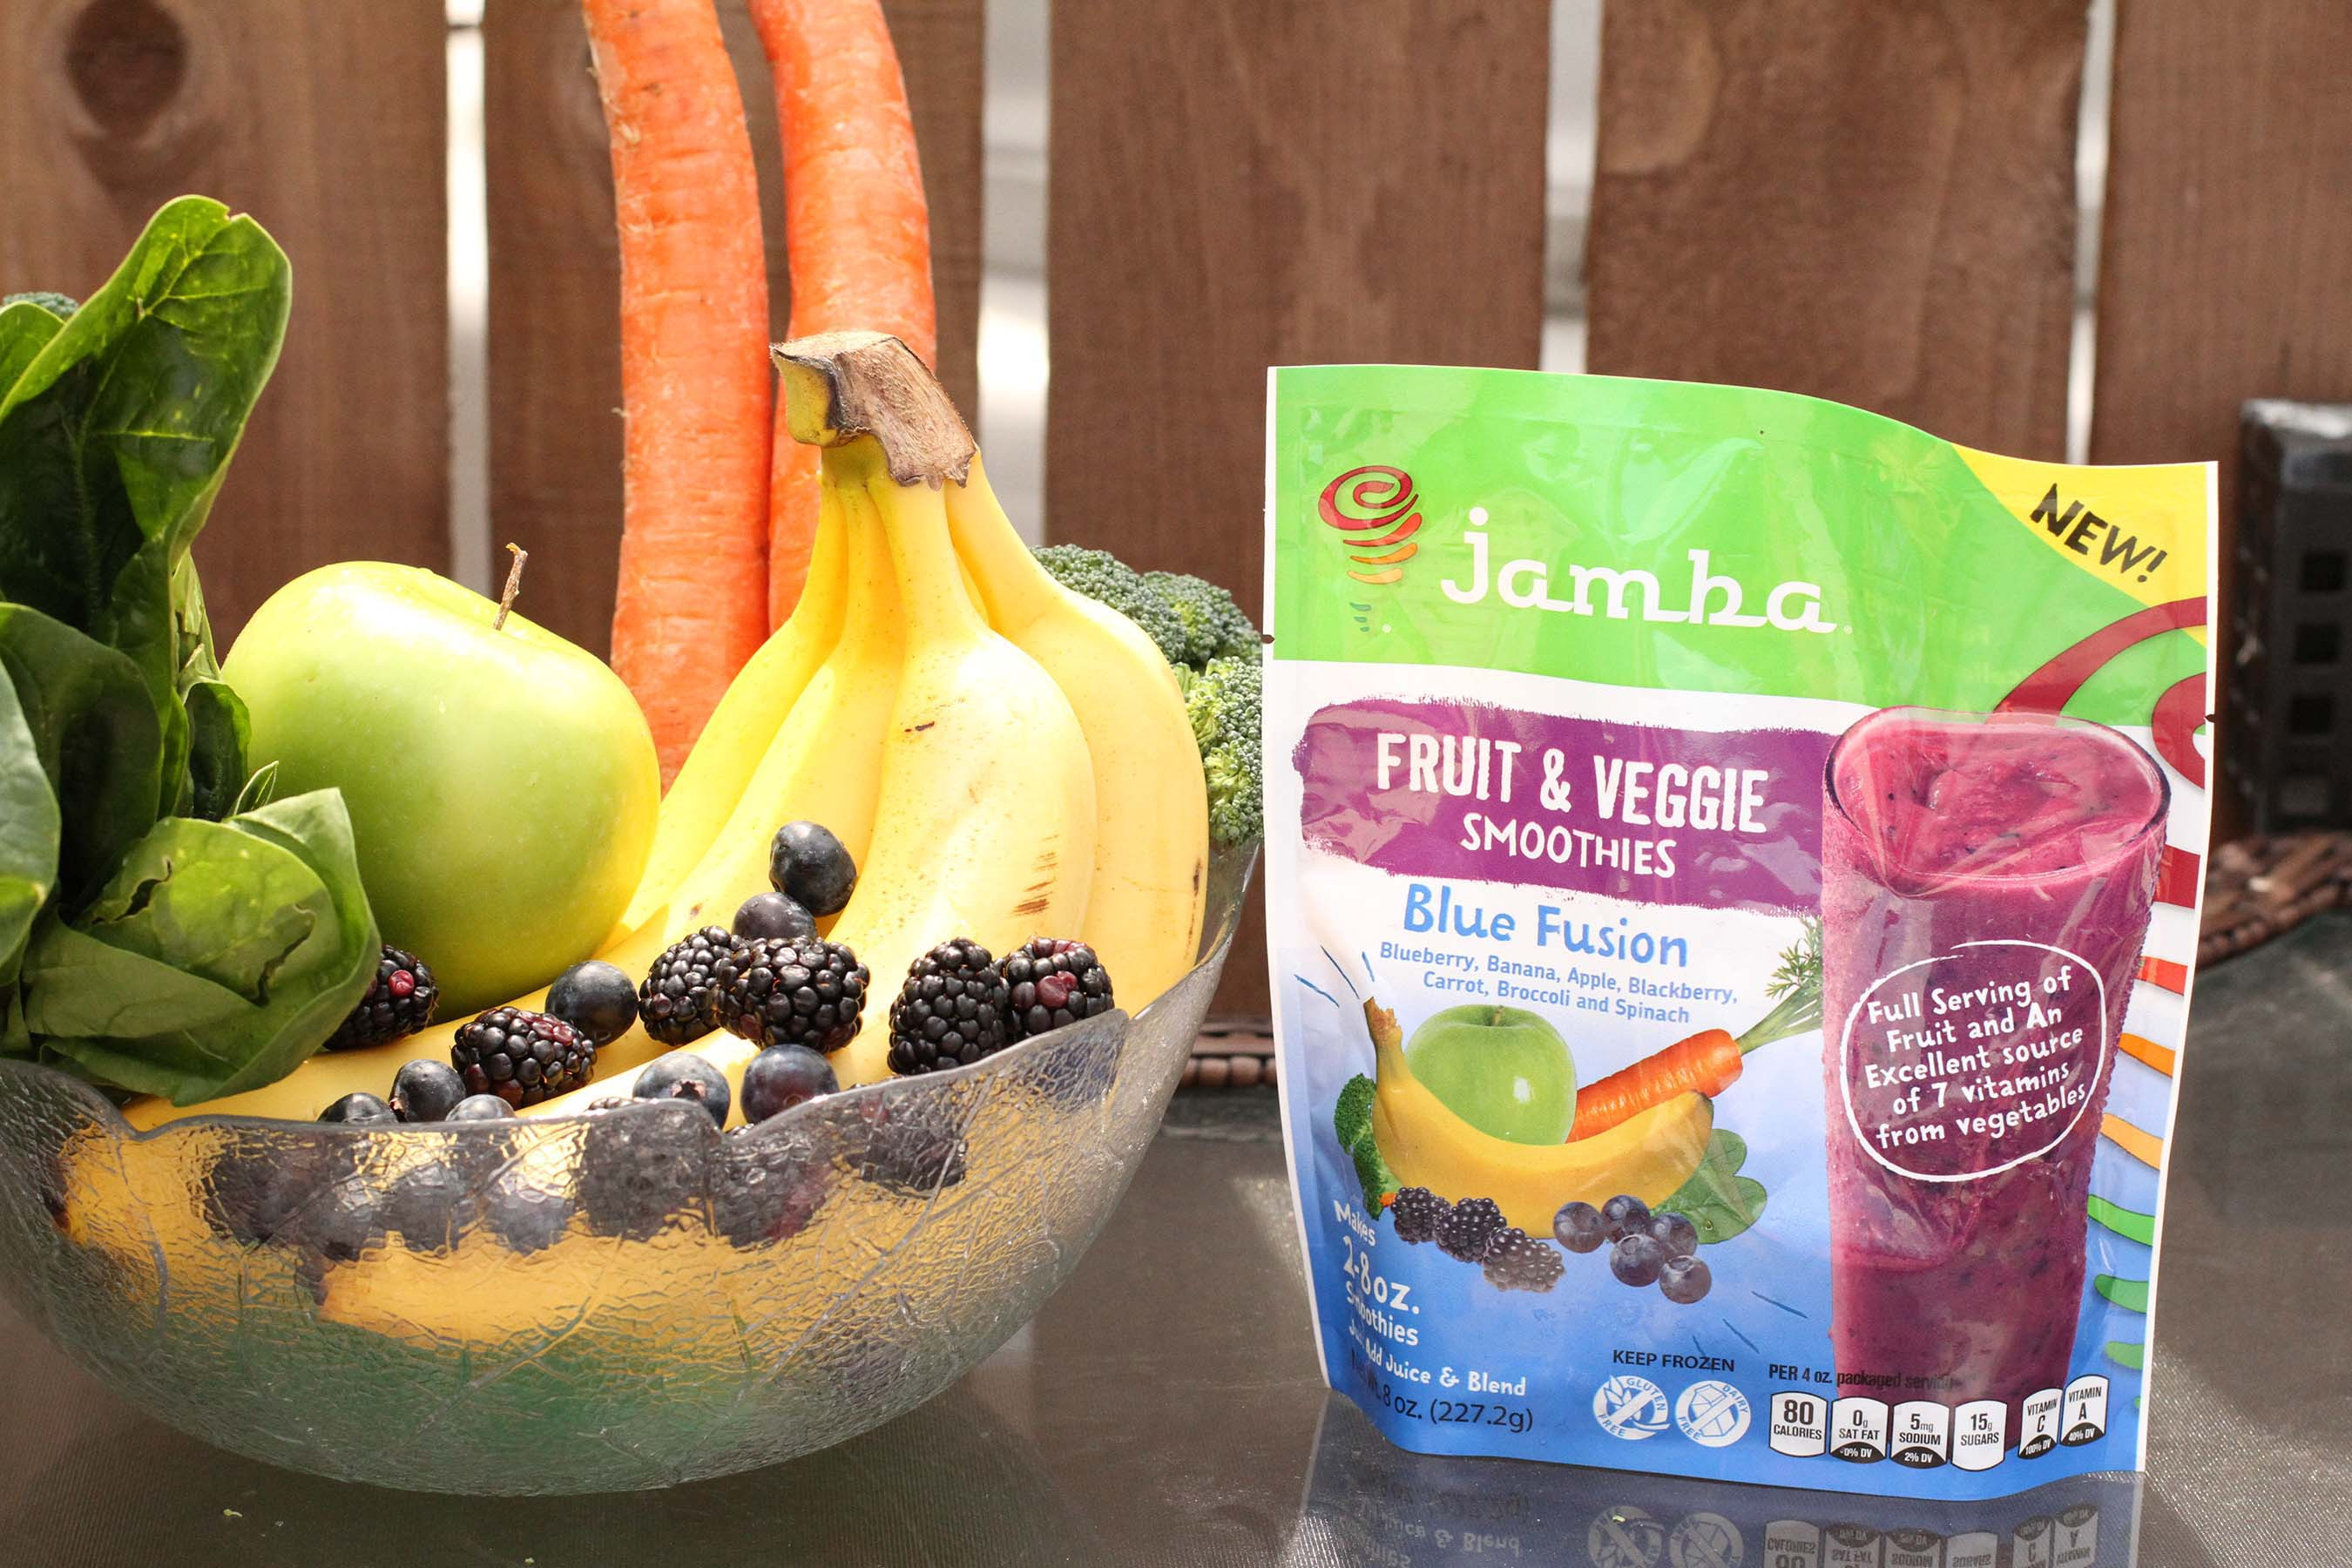 http://www.multivu.com/players/English/7249751-new-fruit-veggie-fusion-smoothies-jamba-at-home-taste-convenience-nutrition/gallery/image/582bb9d1-6c61-4aeb-83cb-f7e121882278.HR.jpg